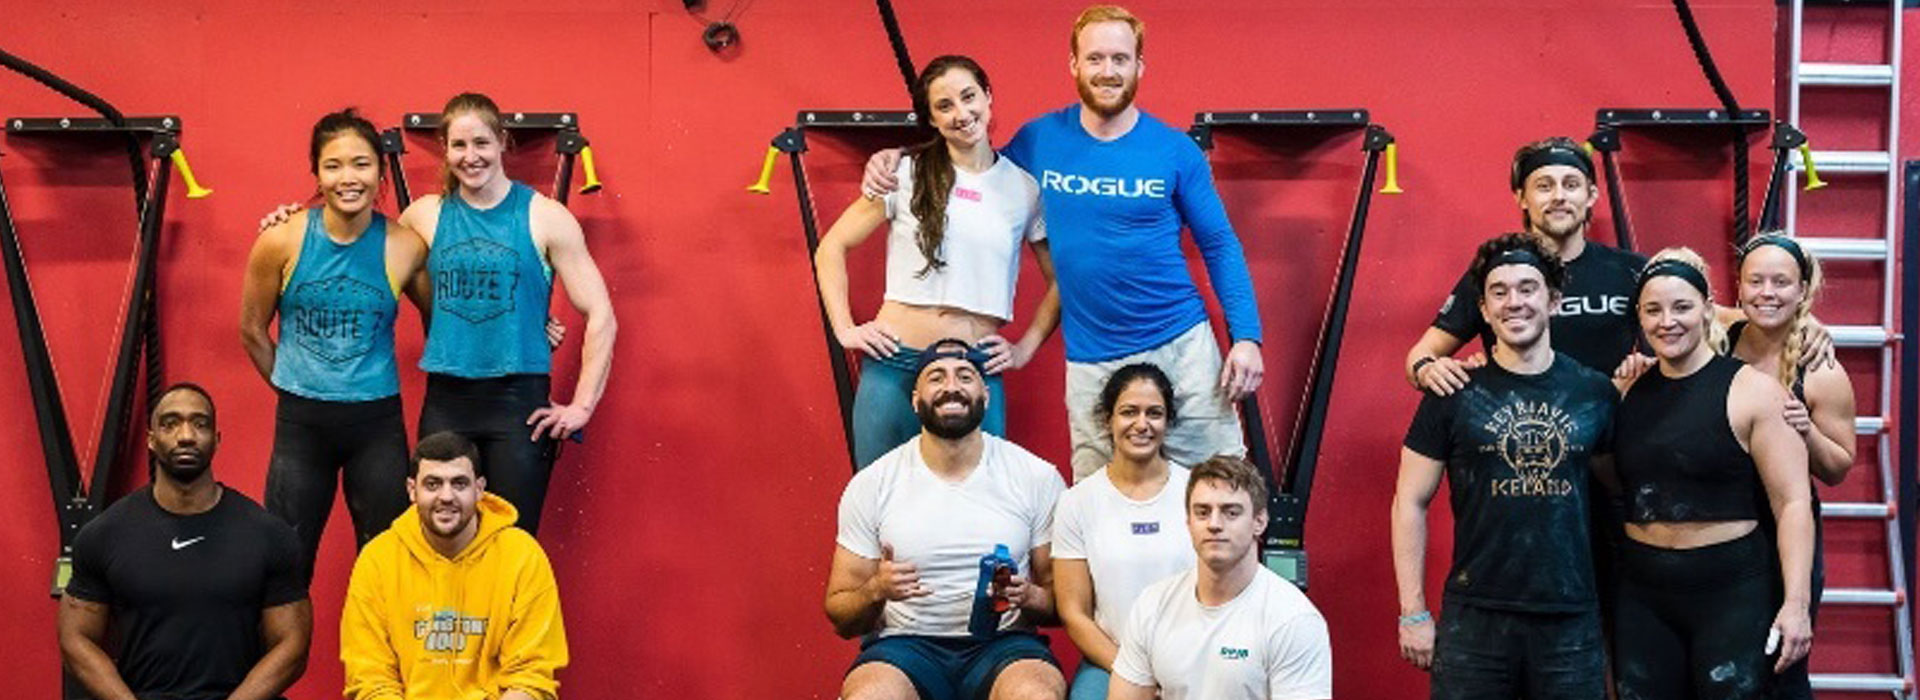 7-Fit Program by CrossFit Route 7 in Vienna VA, 7-Fit Program by CrossFit Route 7 near Tysons Corner VA, 7-Fit Program by CrossFit Route 7 near Falls Church VA, 7-Fit Program by CrossFit Route 7 near McLean VA, 7-Fit Program by CrossFit Route 7 near Great Falls VA